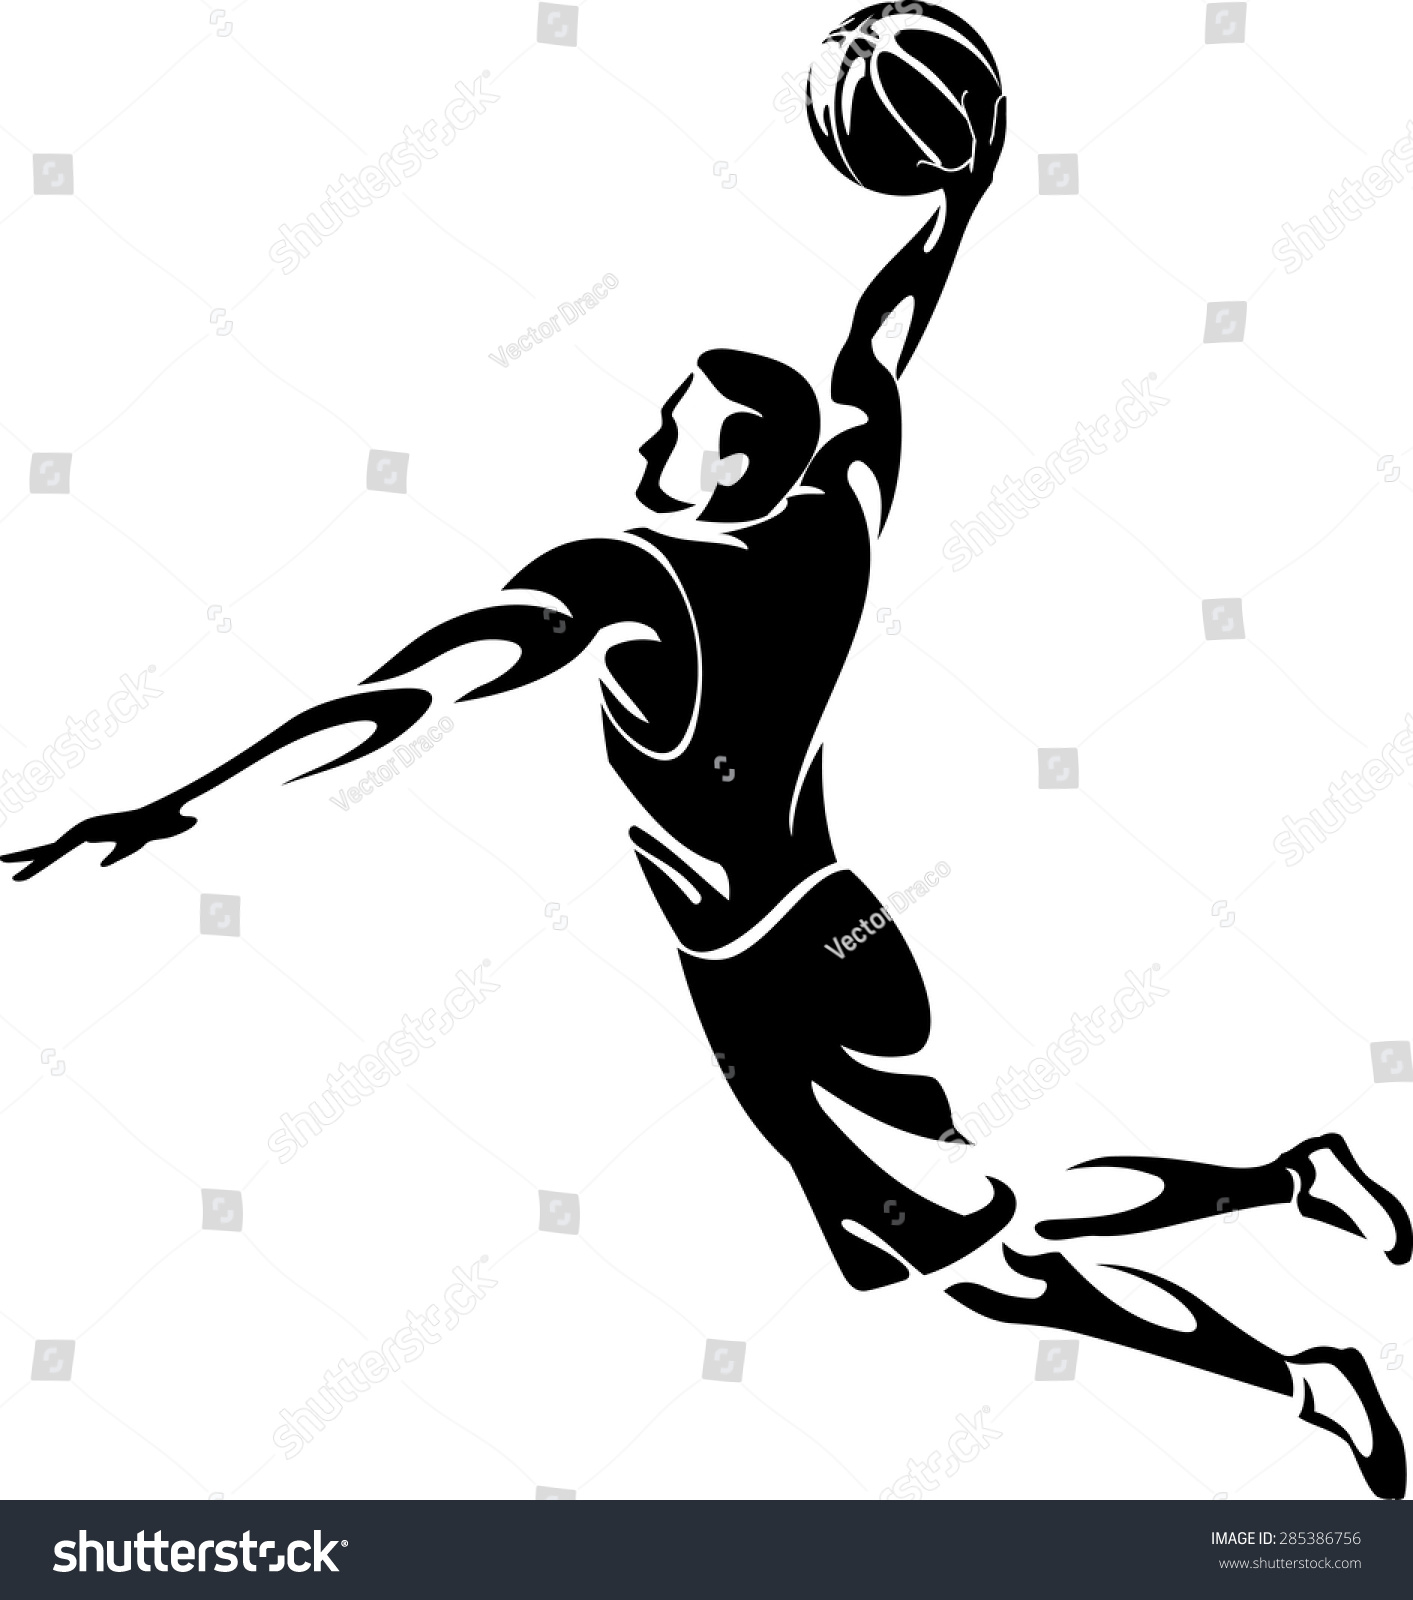 how to draw dunk silhouette